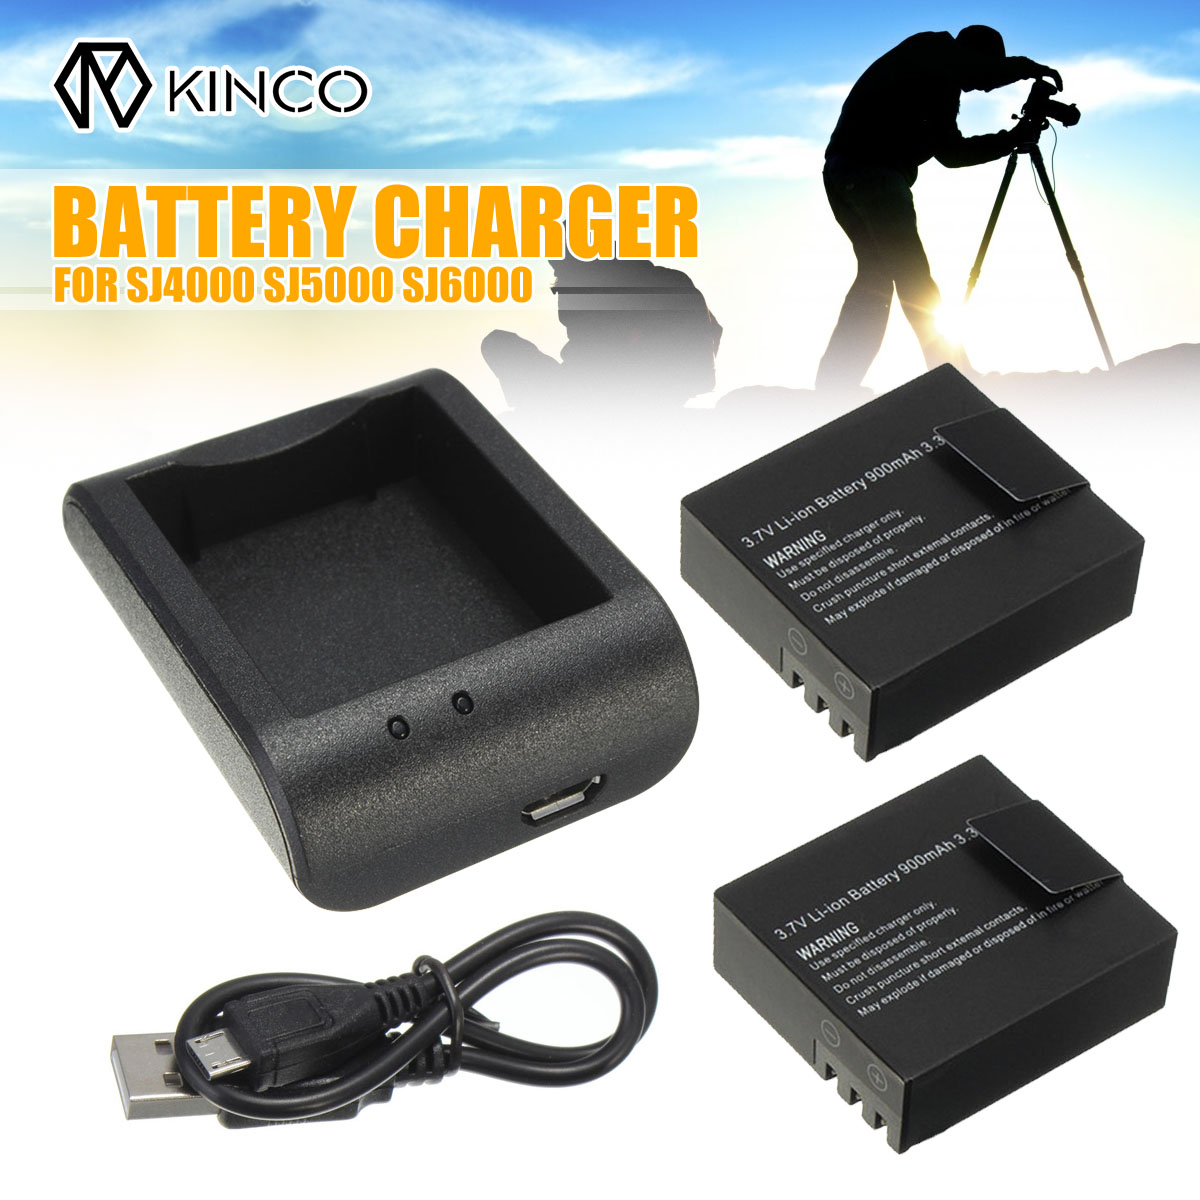 DVR Desktop-Charger Action Sports-Camera Li-Ion-Battery 900mah Usb-Cable Charging 2x3.7v title=